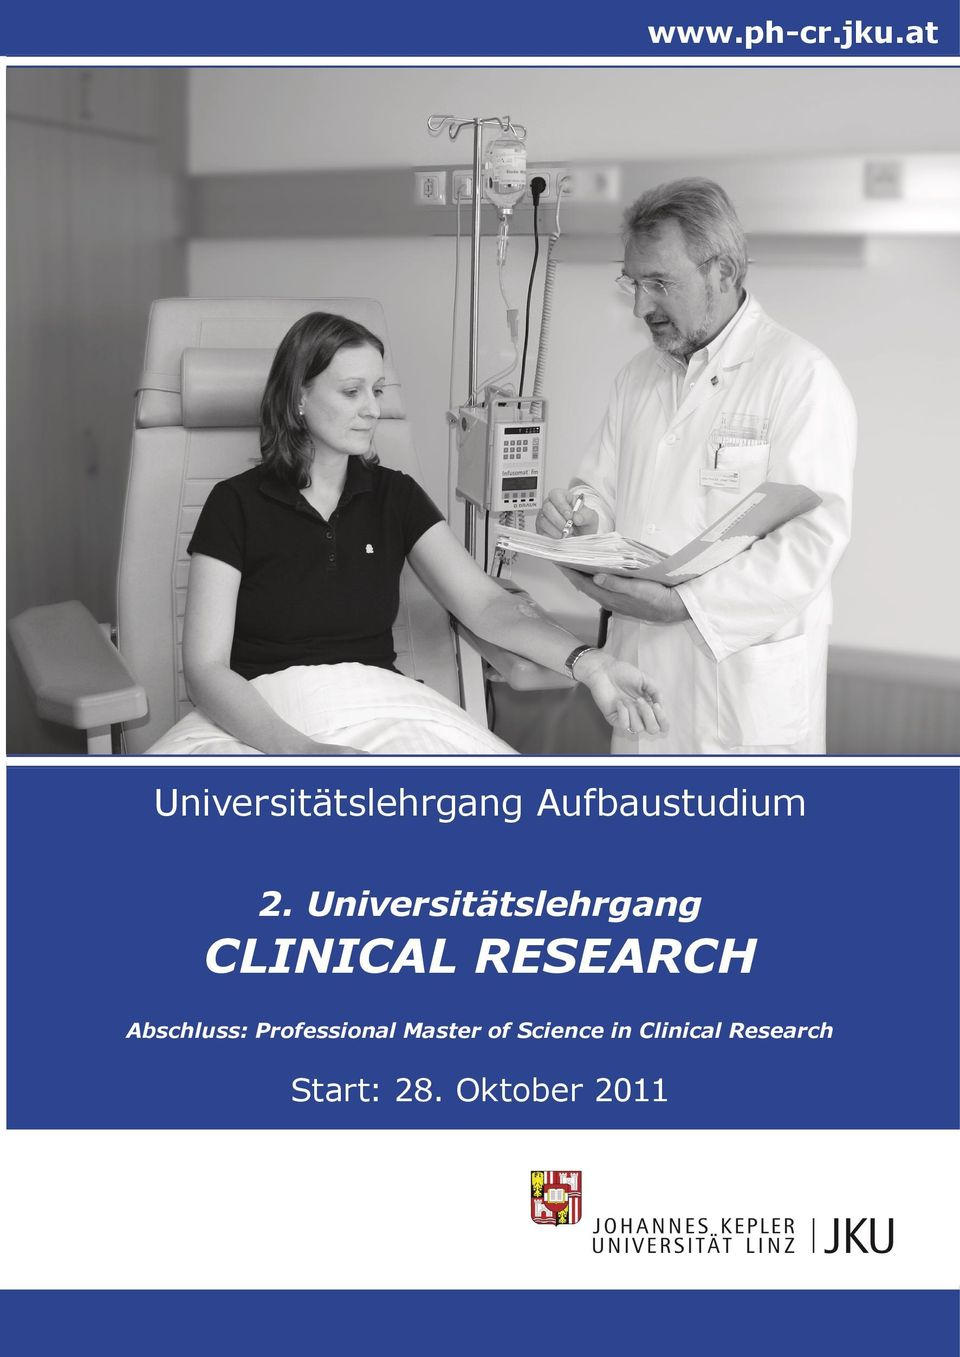 Universitätslehrgang CLINICAL RESEARCH